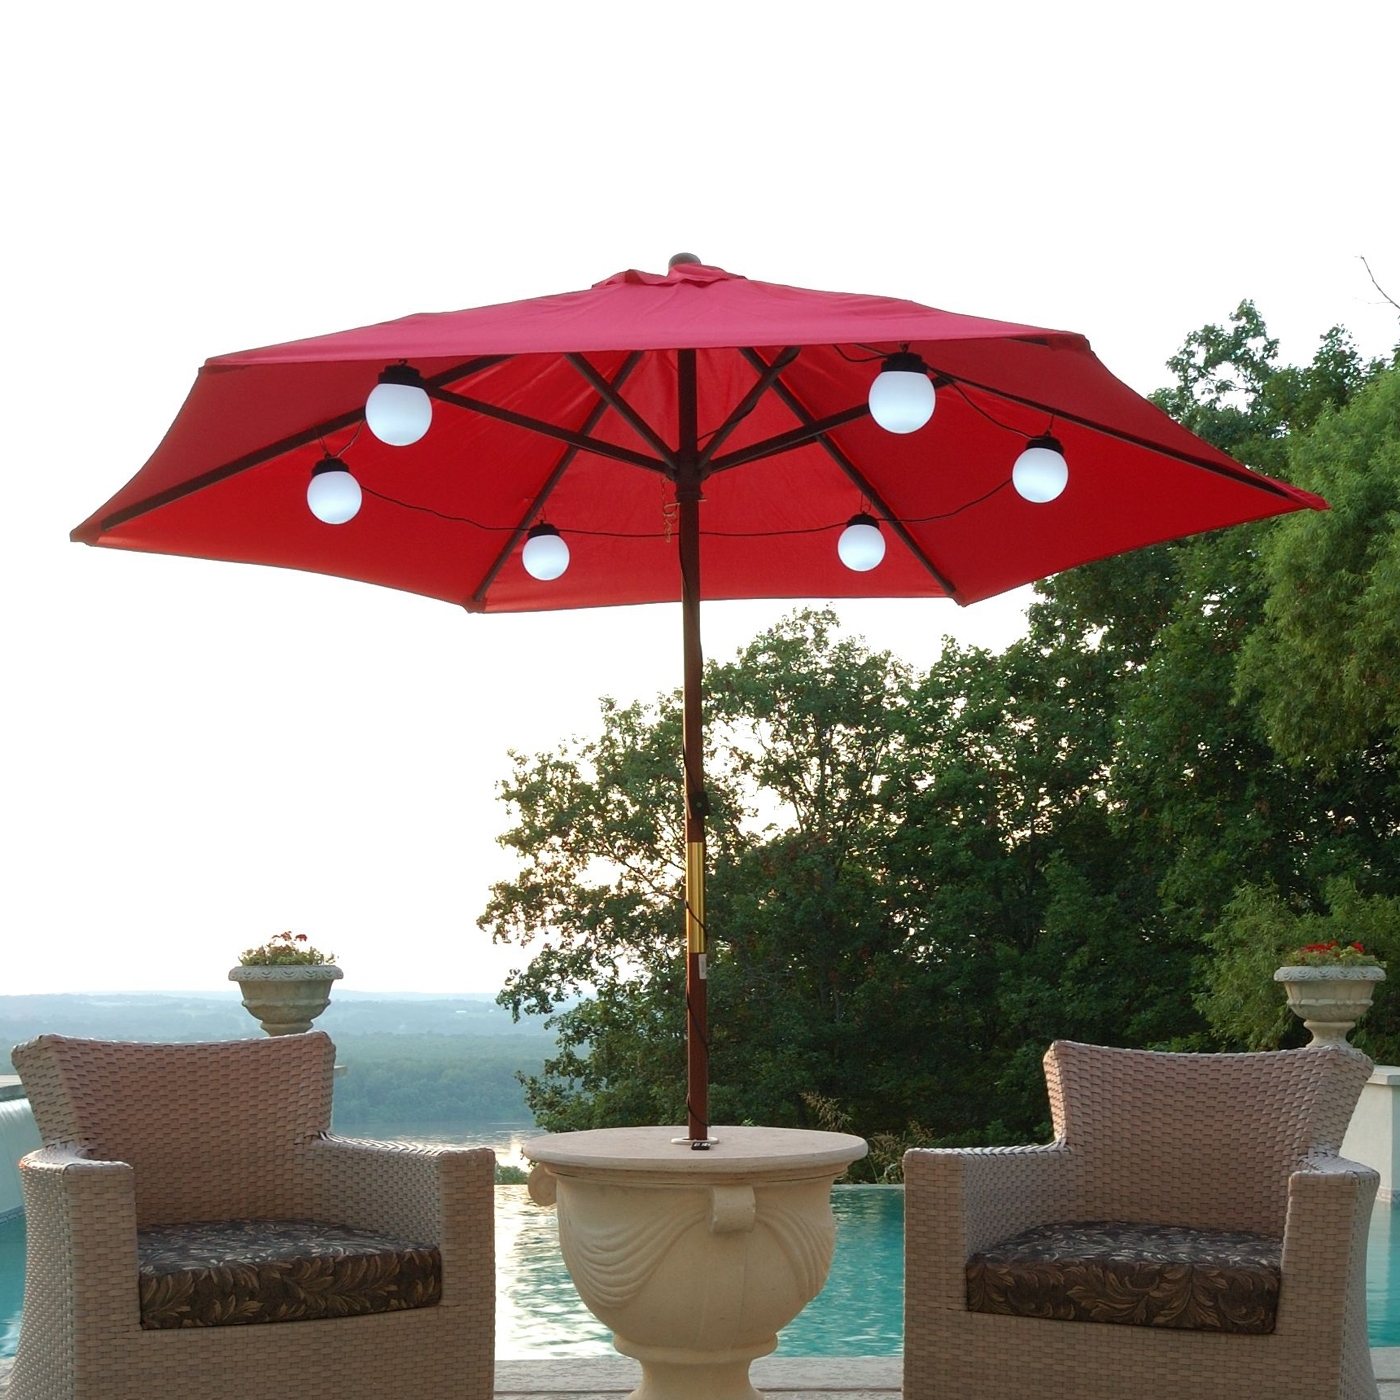 Patio Living Concepts 080 Bright White Led Solar Powered Umbrella intended for Outdoor Umbrella Lanterns (Image 11 of 20)